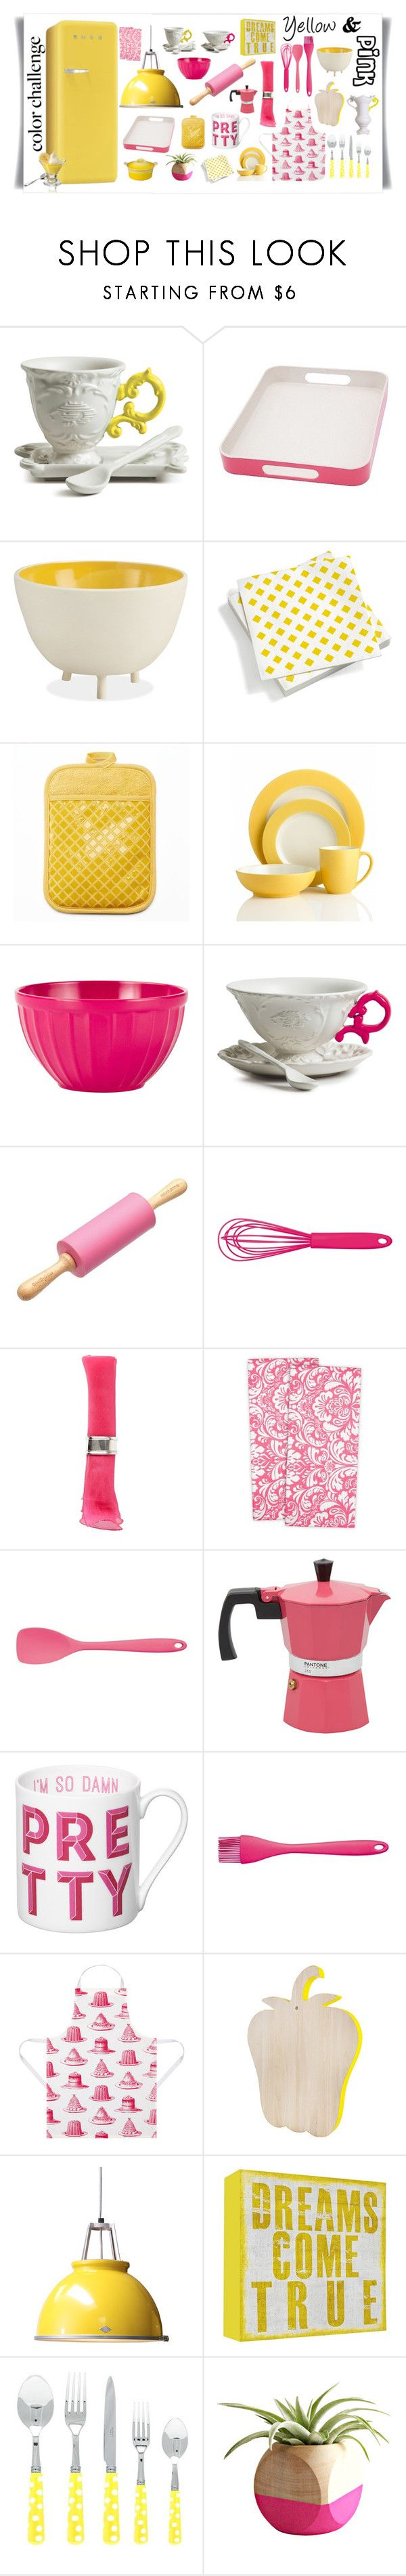 """Yellow & Pink"" by jane-pez ❤ liked on Polyvore featuring interior, interiors, interior design, home, home decor, interior decorating, Seletti, Vitra, Food Network and Noritake"